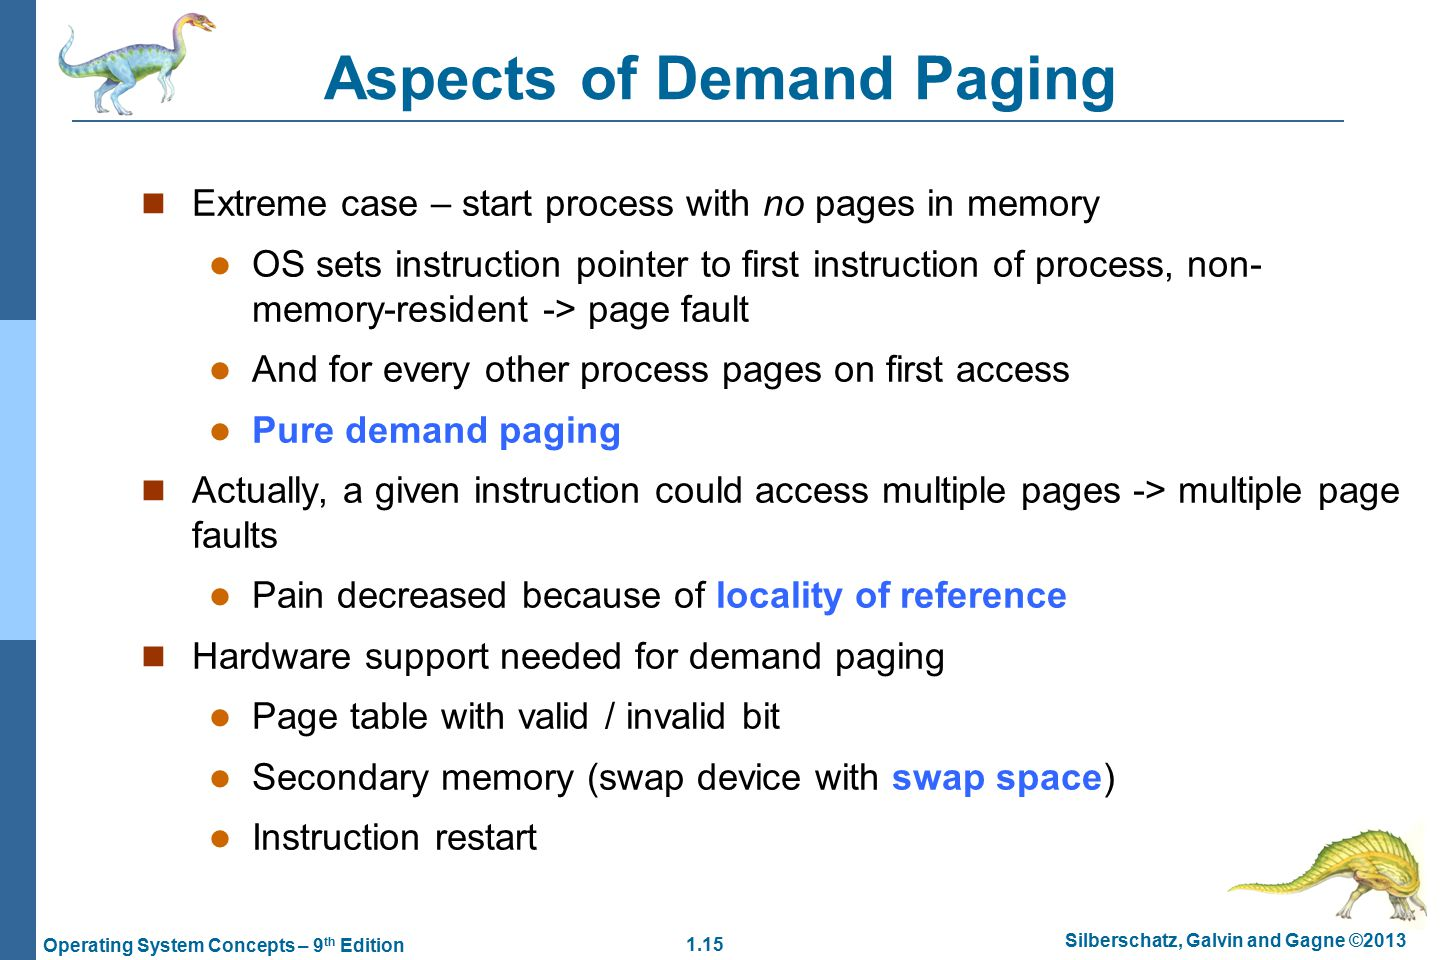 1.15 Silberschatz, Galvin and Gagne ©2013 Operating System Concepts – 9 th Edition Aspects of Demand Paging Extreme case – start process with no pages in memory OS sets instruction pointer to first instruction of process, non- memory-resident -> page fault And for every other process pages on first access Pure demand paging Actually, a given instruction could access multiple pages -> multiple page faults Pain decreased because of locality of reference Hardware support needed for demand paging Page table with valid / invalid bit Secondary memory (swap device with swap space) Instruction restart